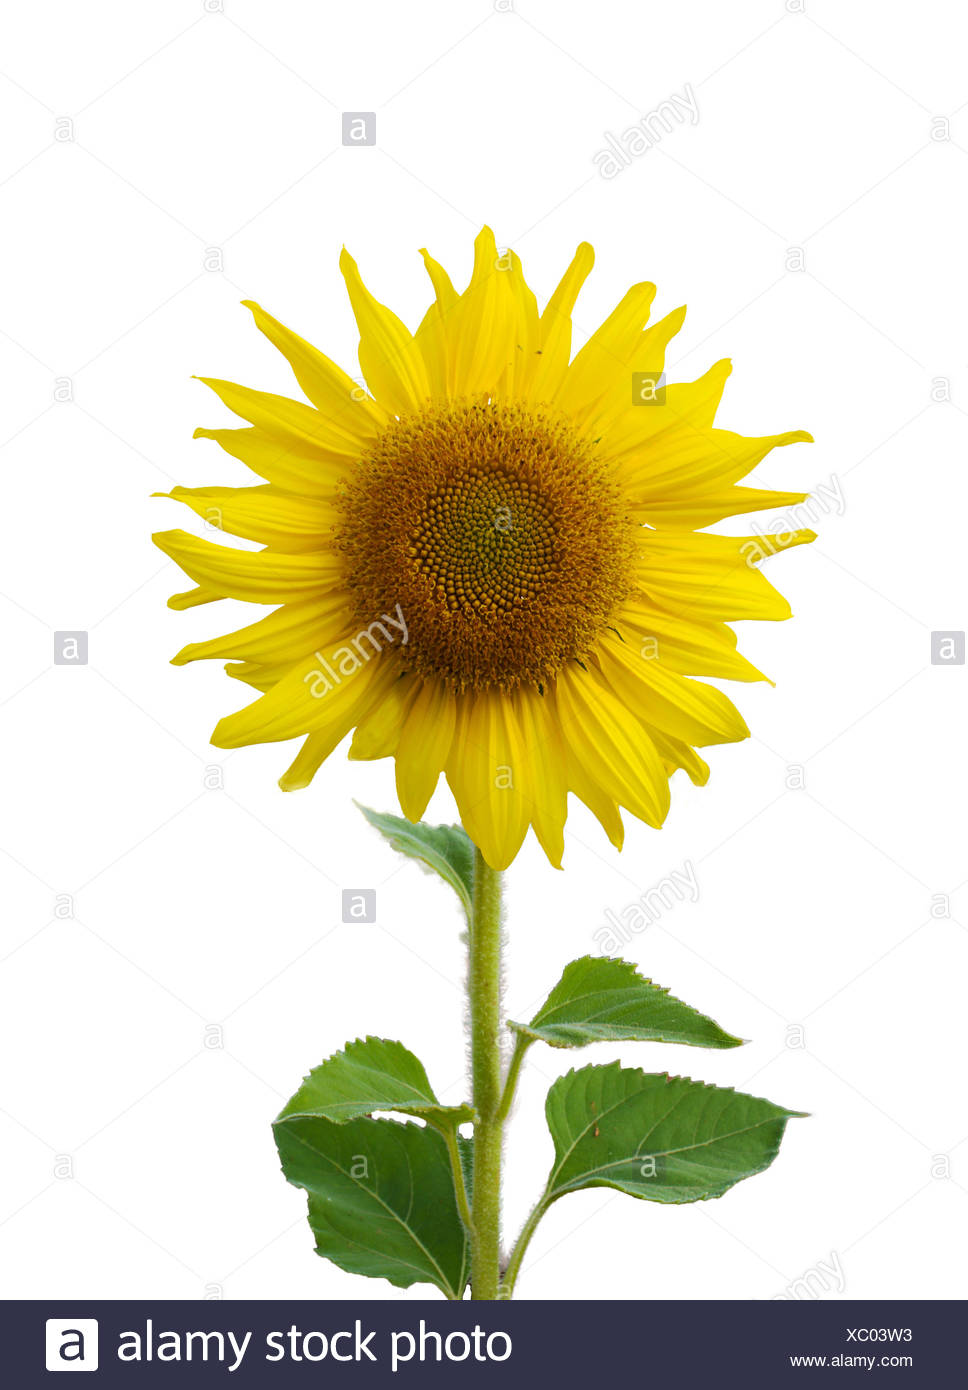 Sunflower blossoming isolate - Stock Image